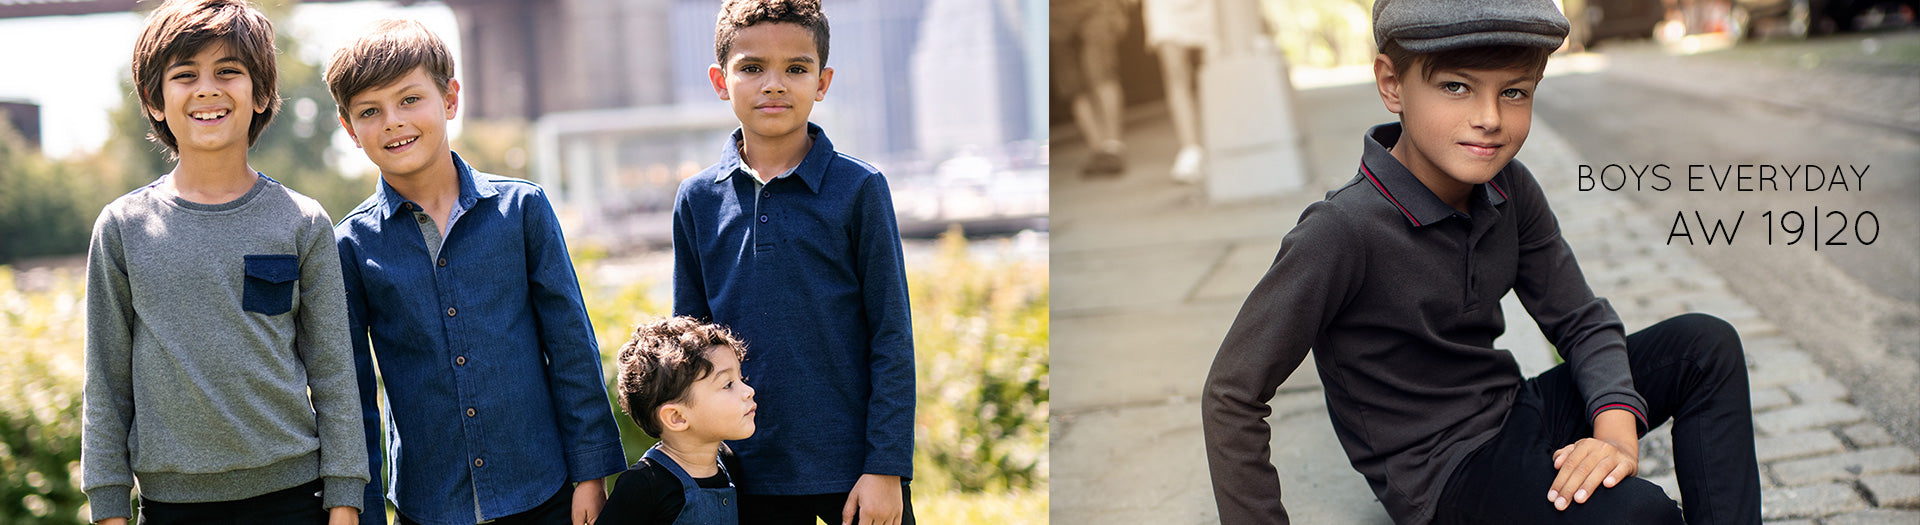 AW1920 Boys' Everyday Shirts & Tops